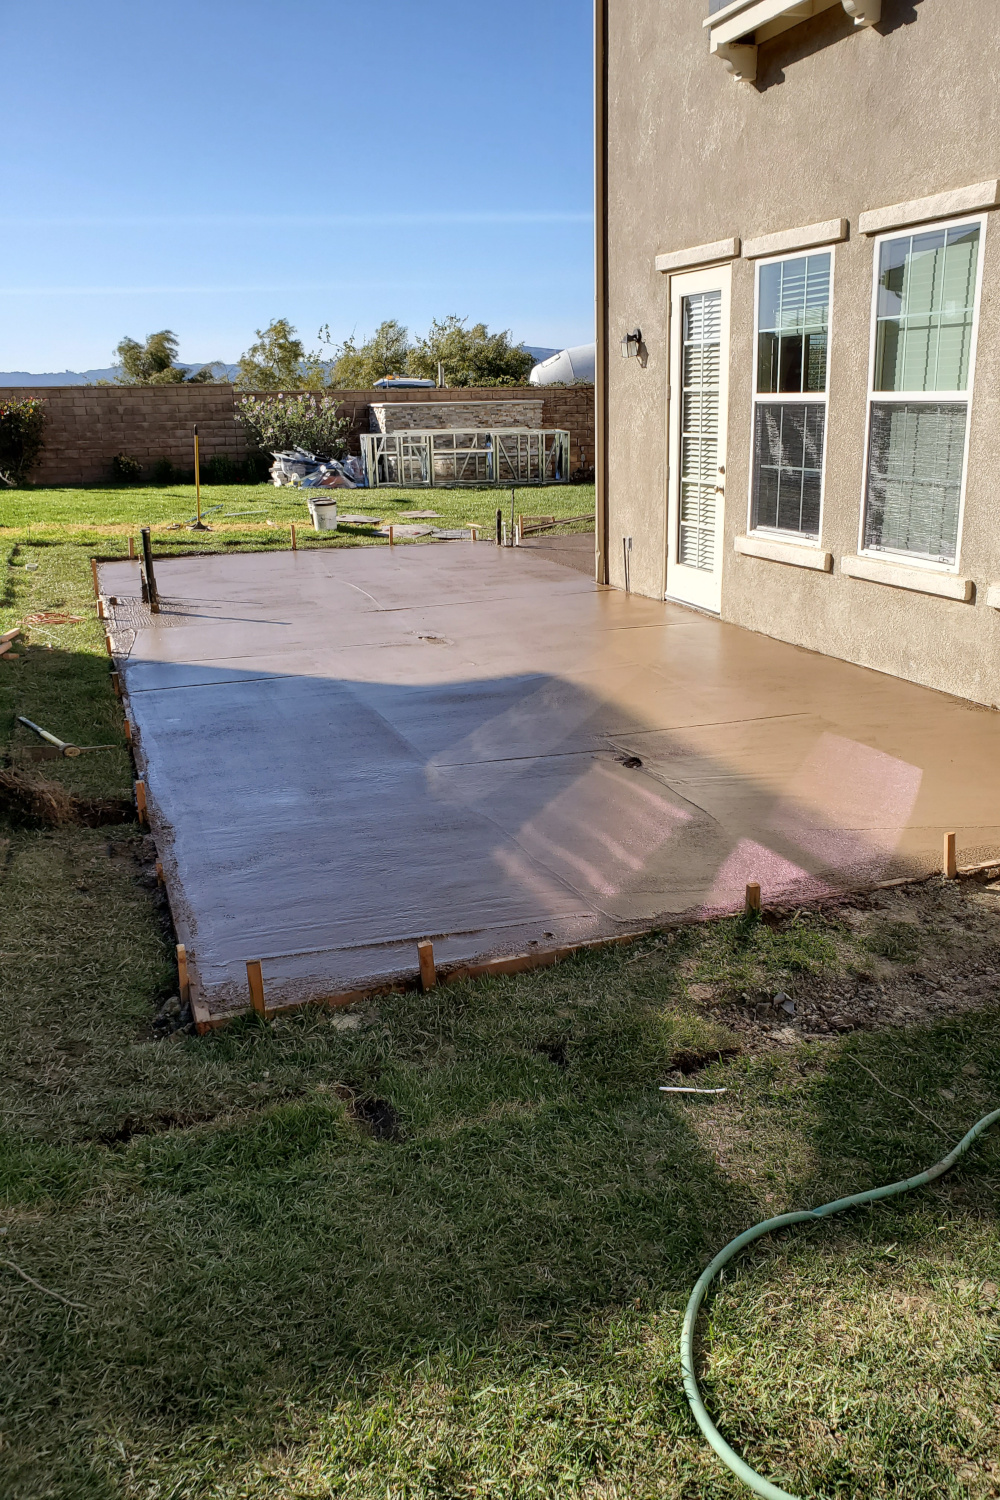 Concrete poured